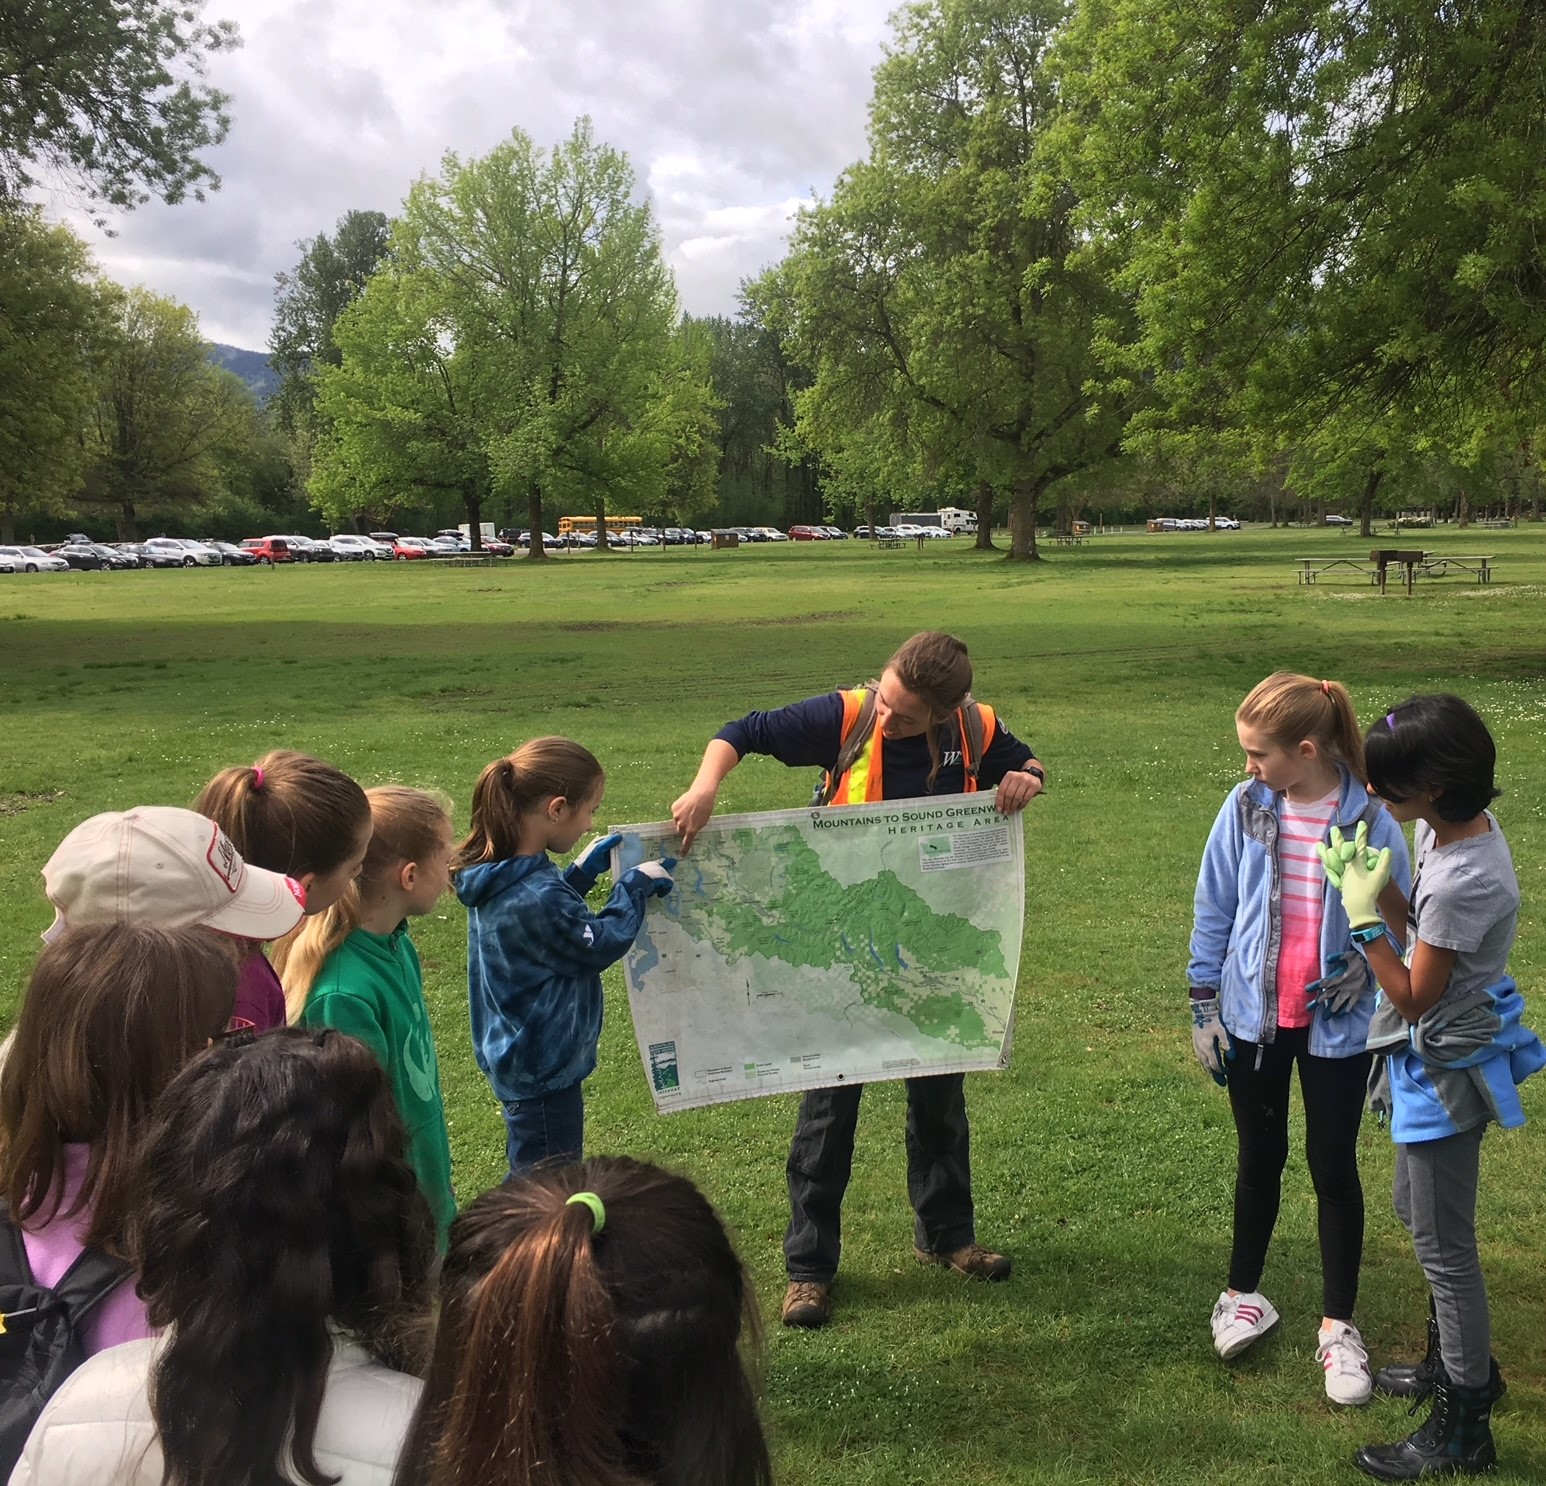 A person points to a map, showing a group of children a location, while standing in a grassy field.